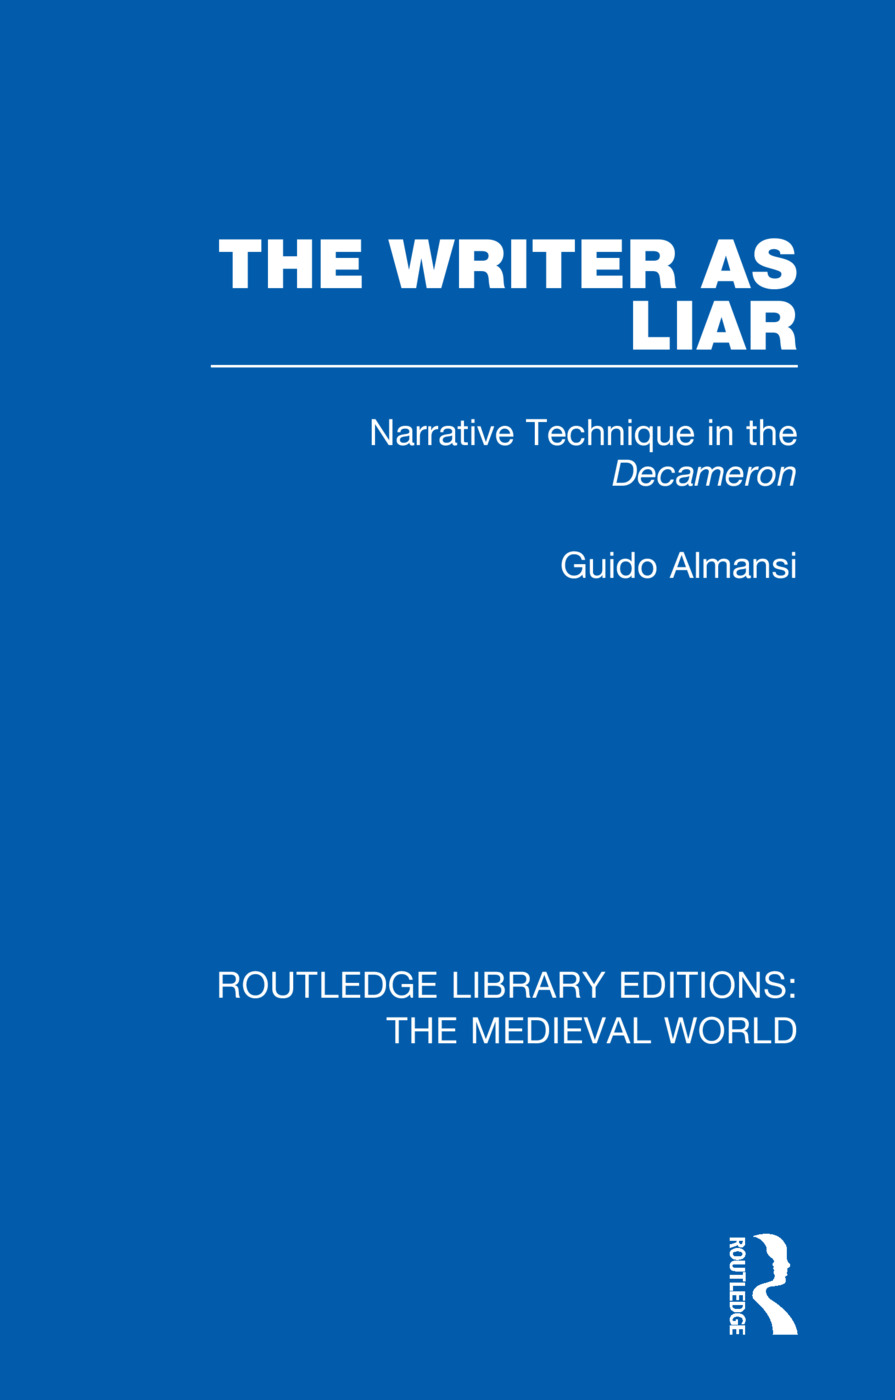 The Writer as Liar: Narrative Technique in the Decameron book cover